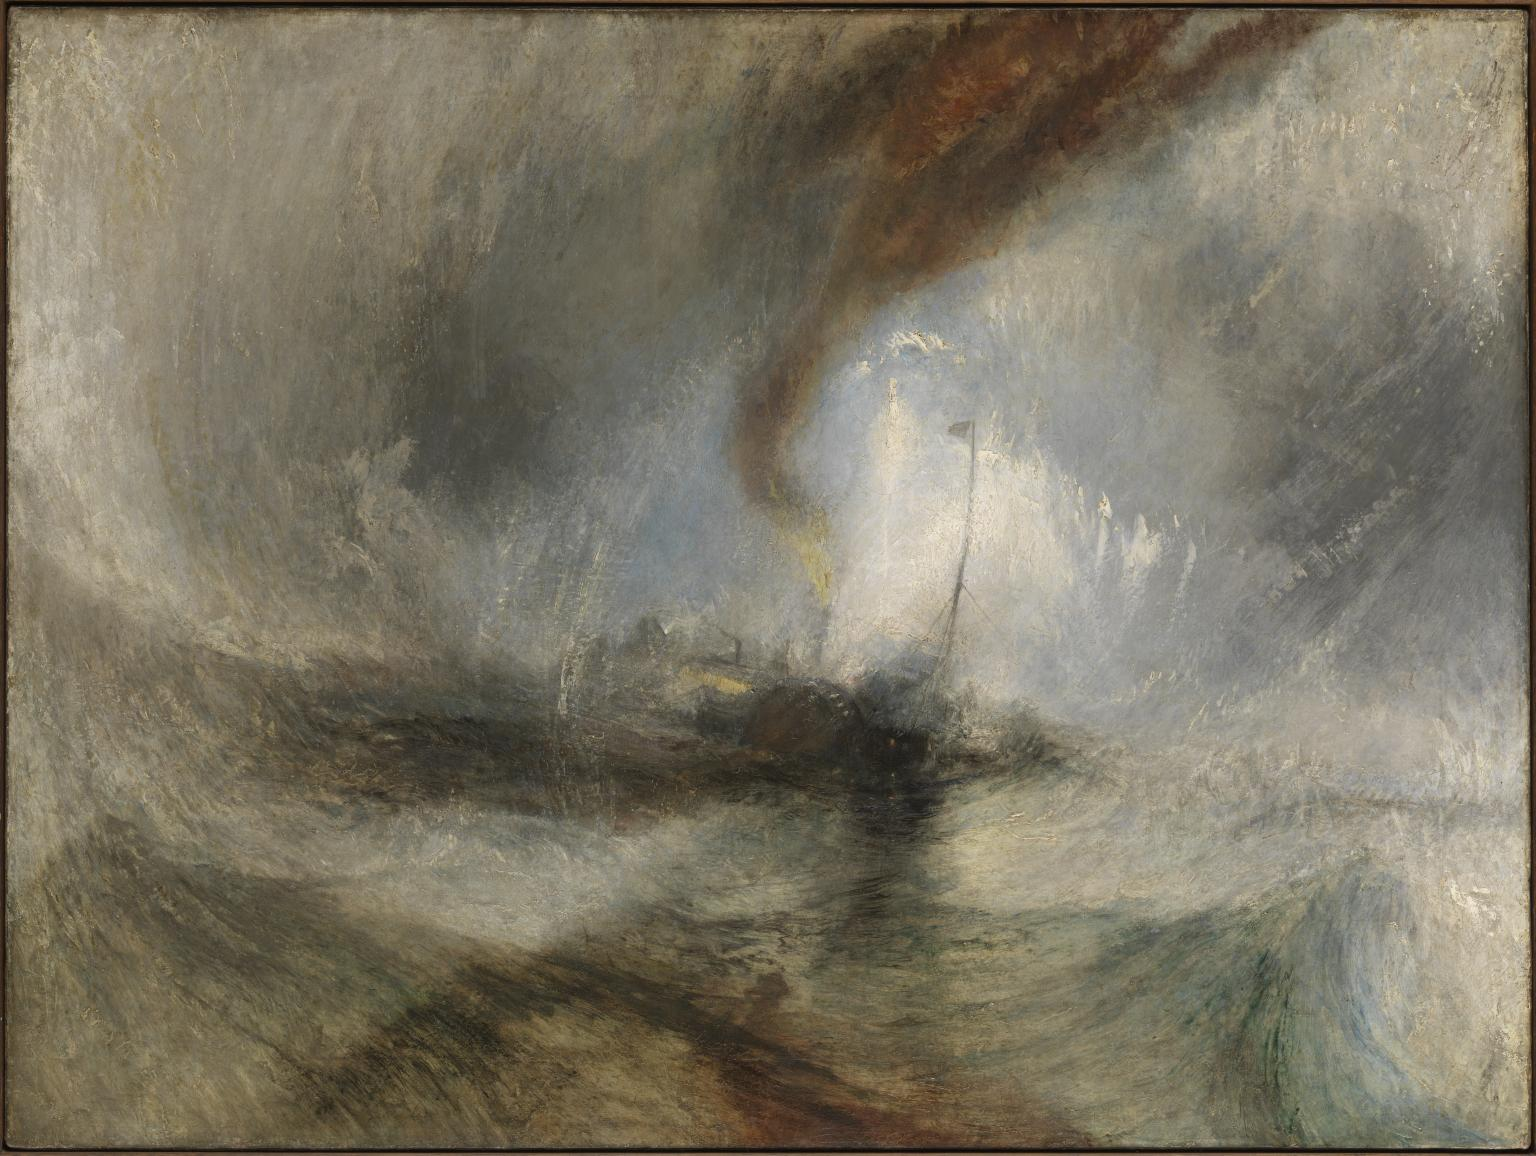 Snow Storm - Steam-Boat off a Harbour's Mouth. exhibited 1842, J. M.W Turner (Image courtesy of the Tate)